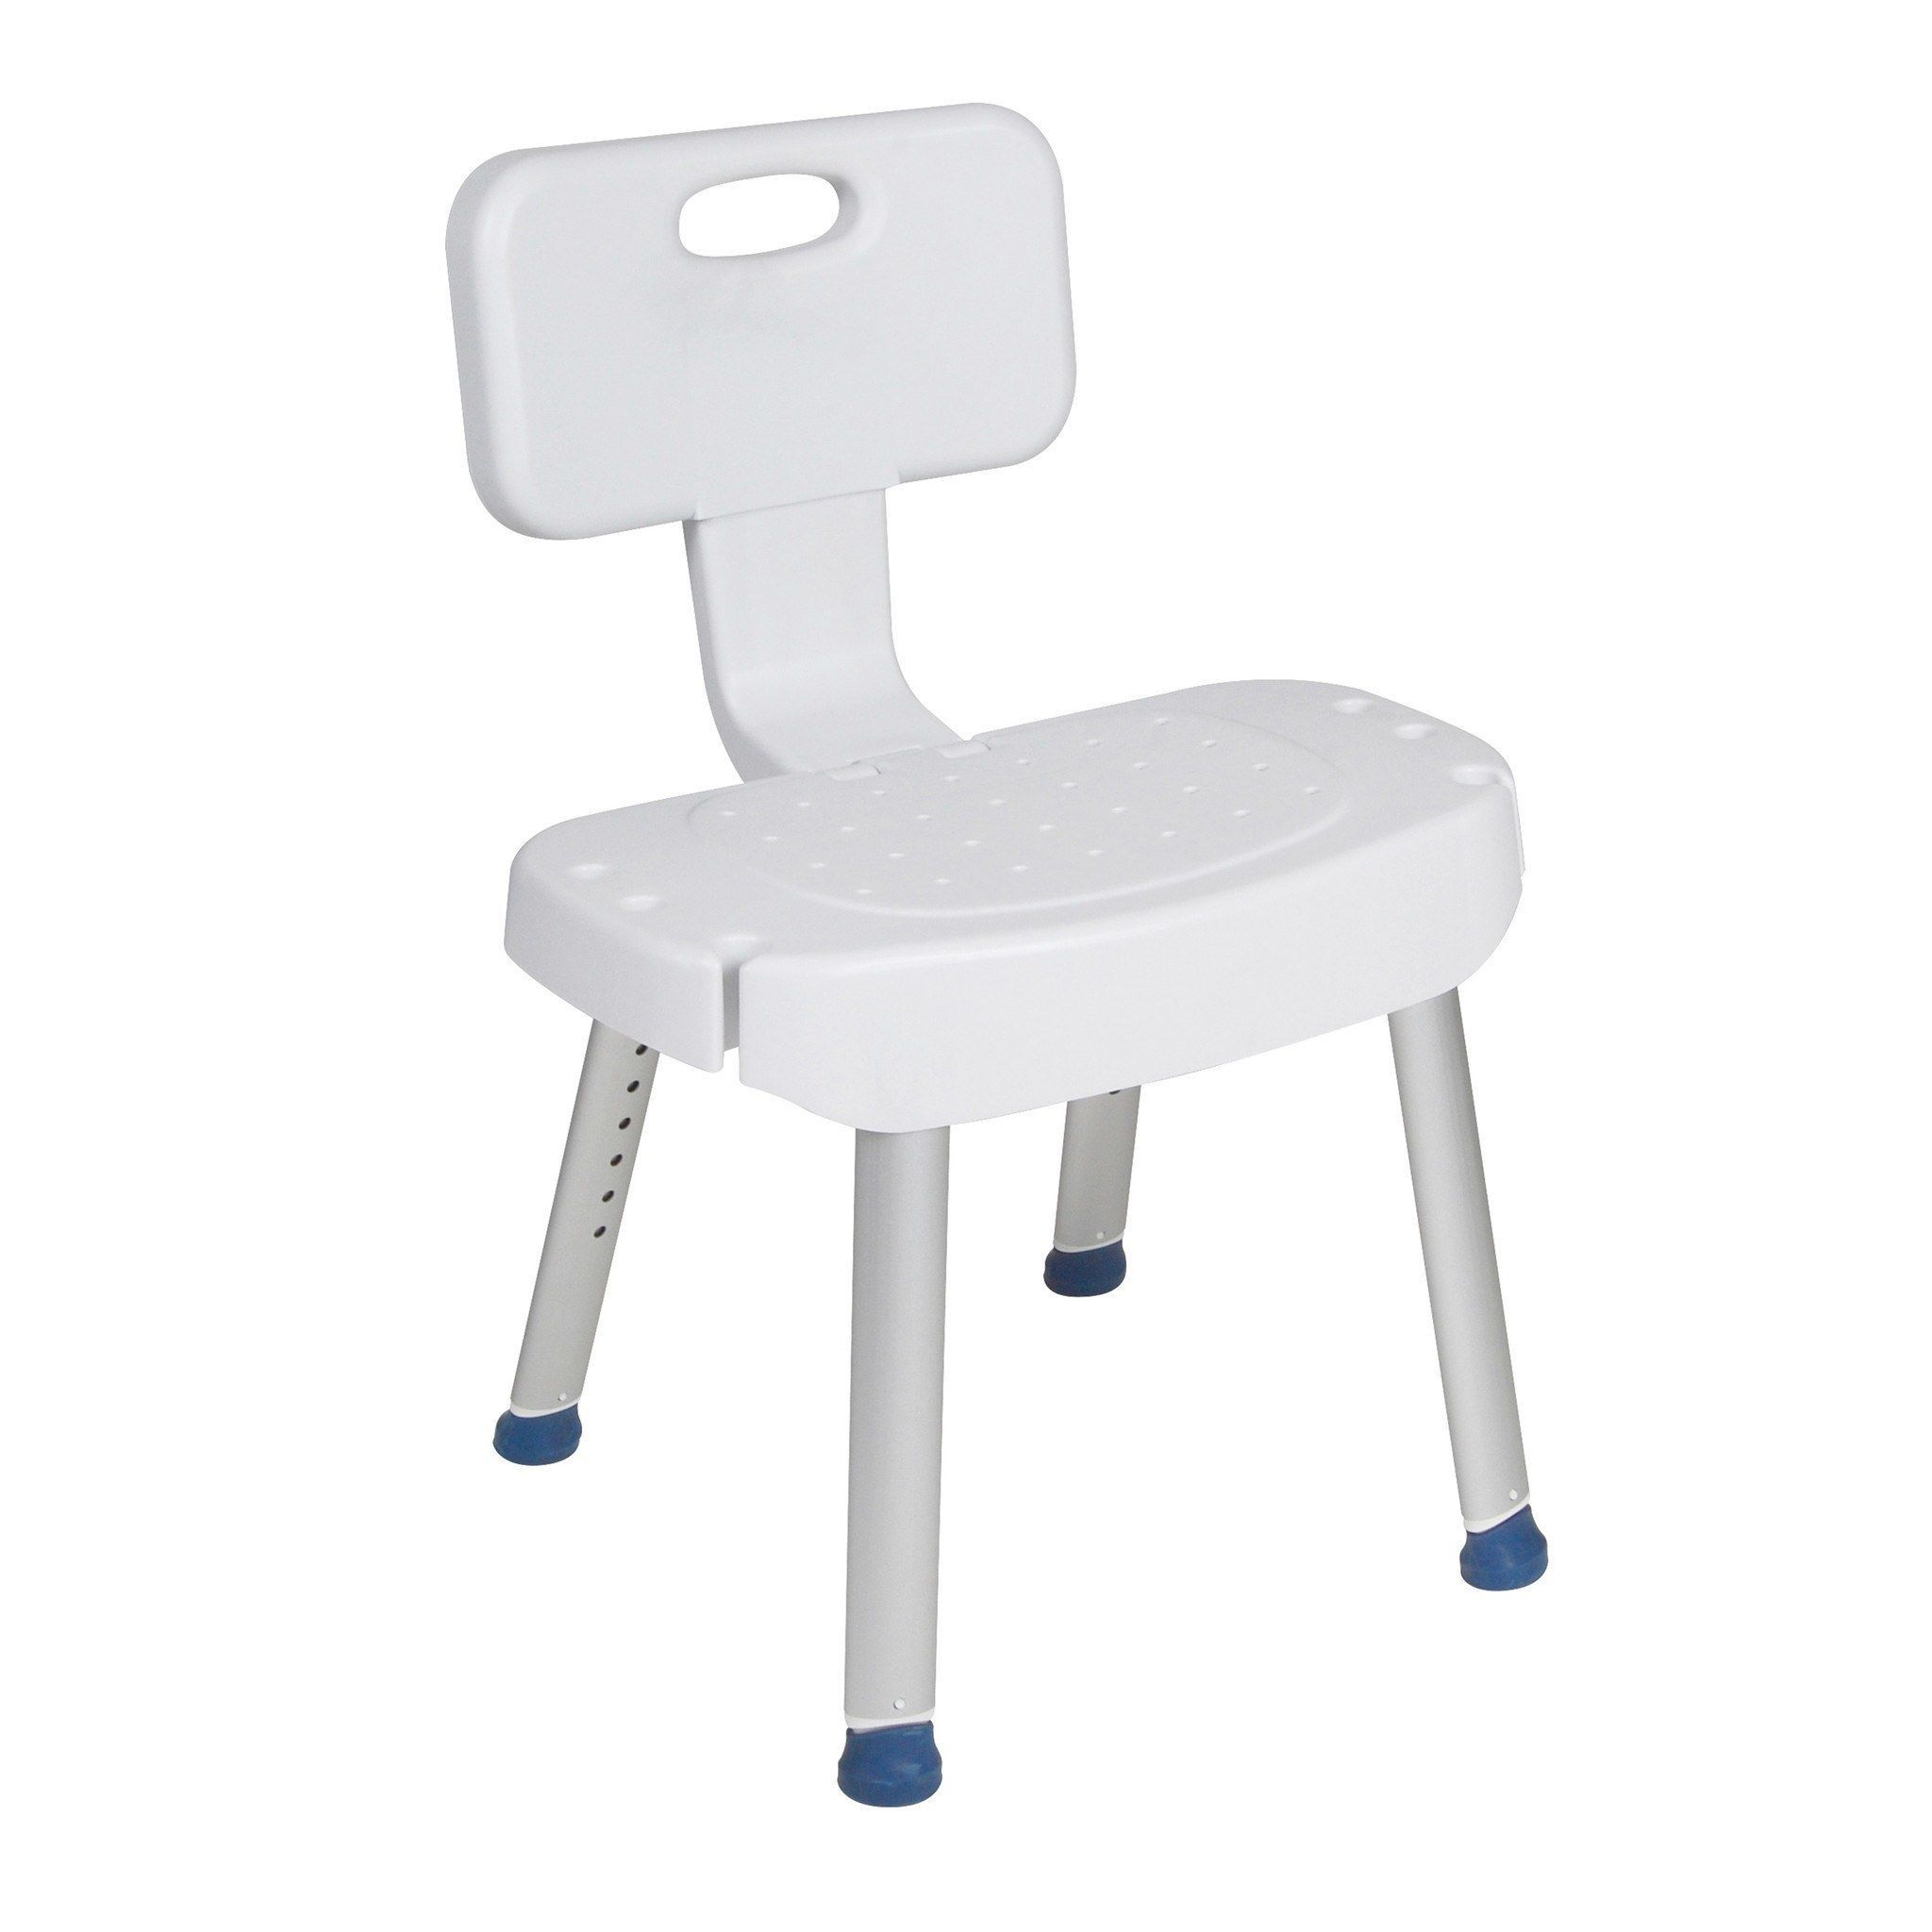 Drive Medical rtl12606 Bathroom Safety Shower Chair with Folding ...